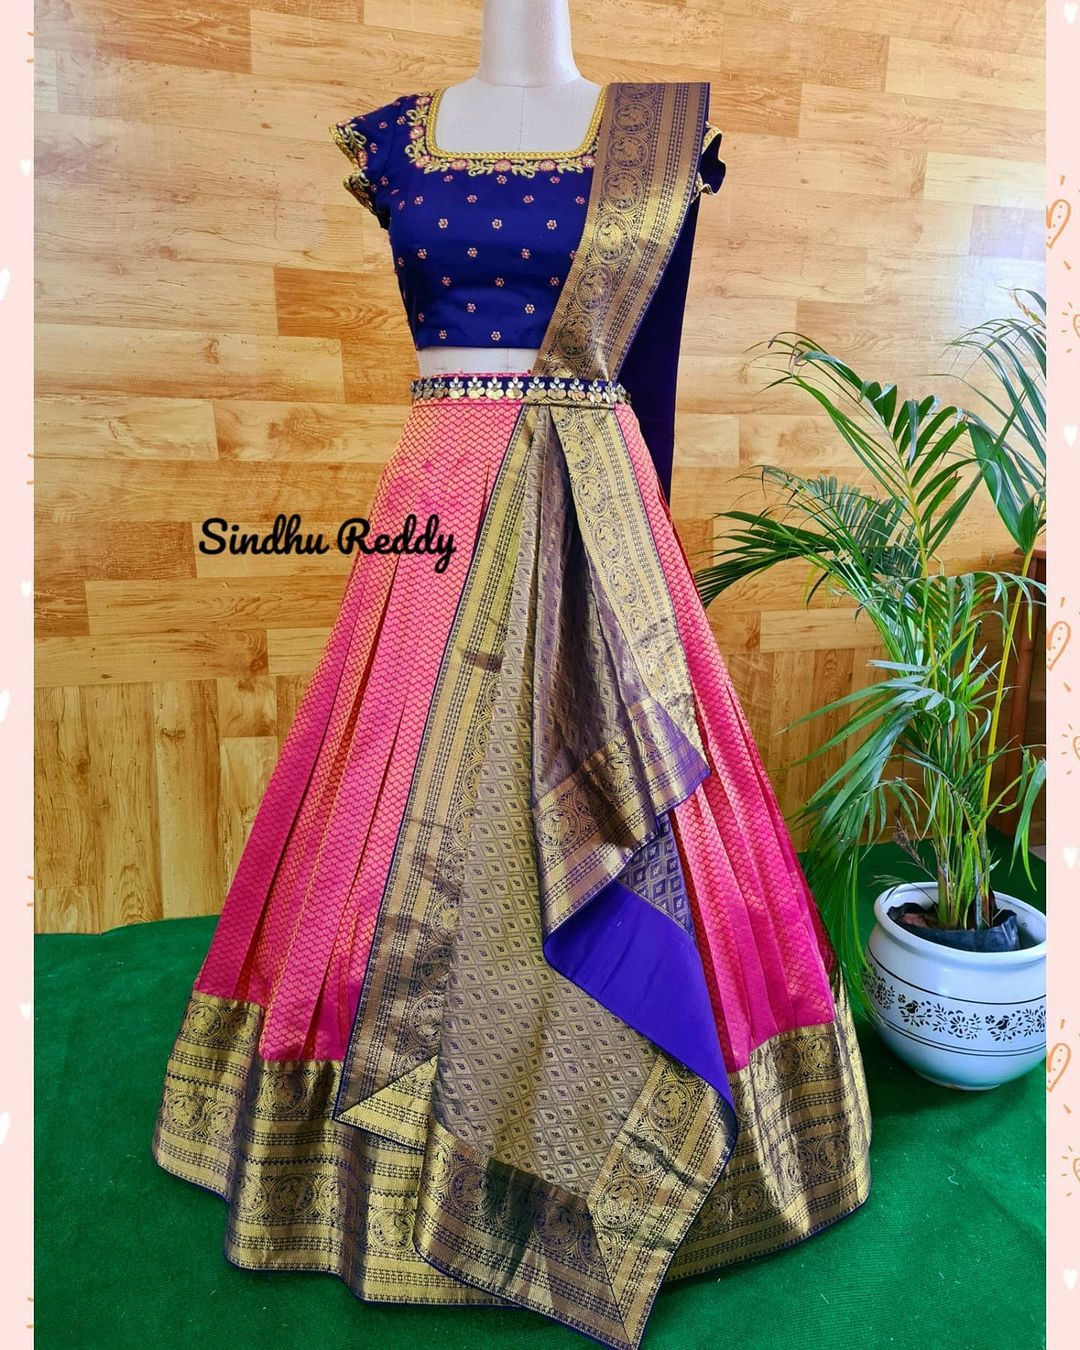 Redefine occasion wear with this Pre draped and stitched duppata on a crop top and pattu skirt. . . I think its a really easy way to carry an outfit more gracefully and comfortably 2021-04-29